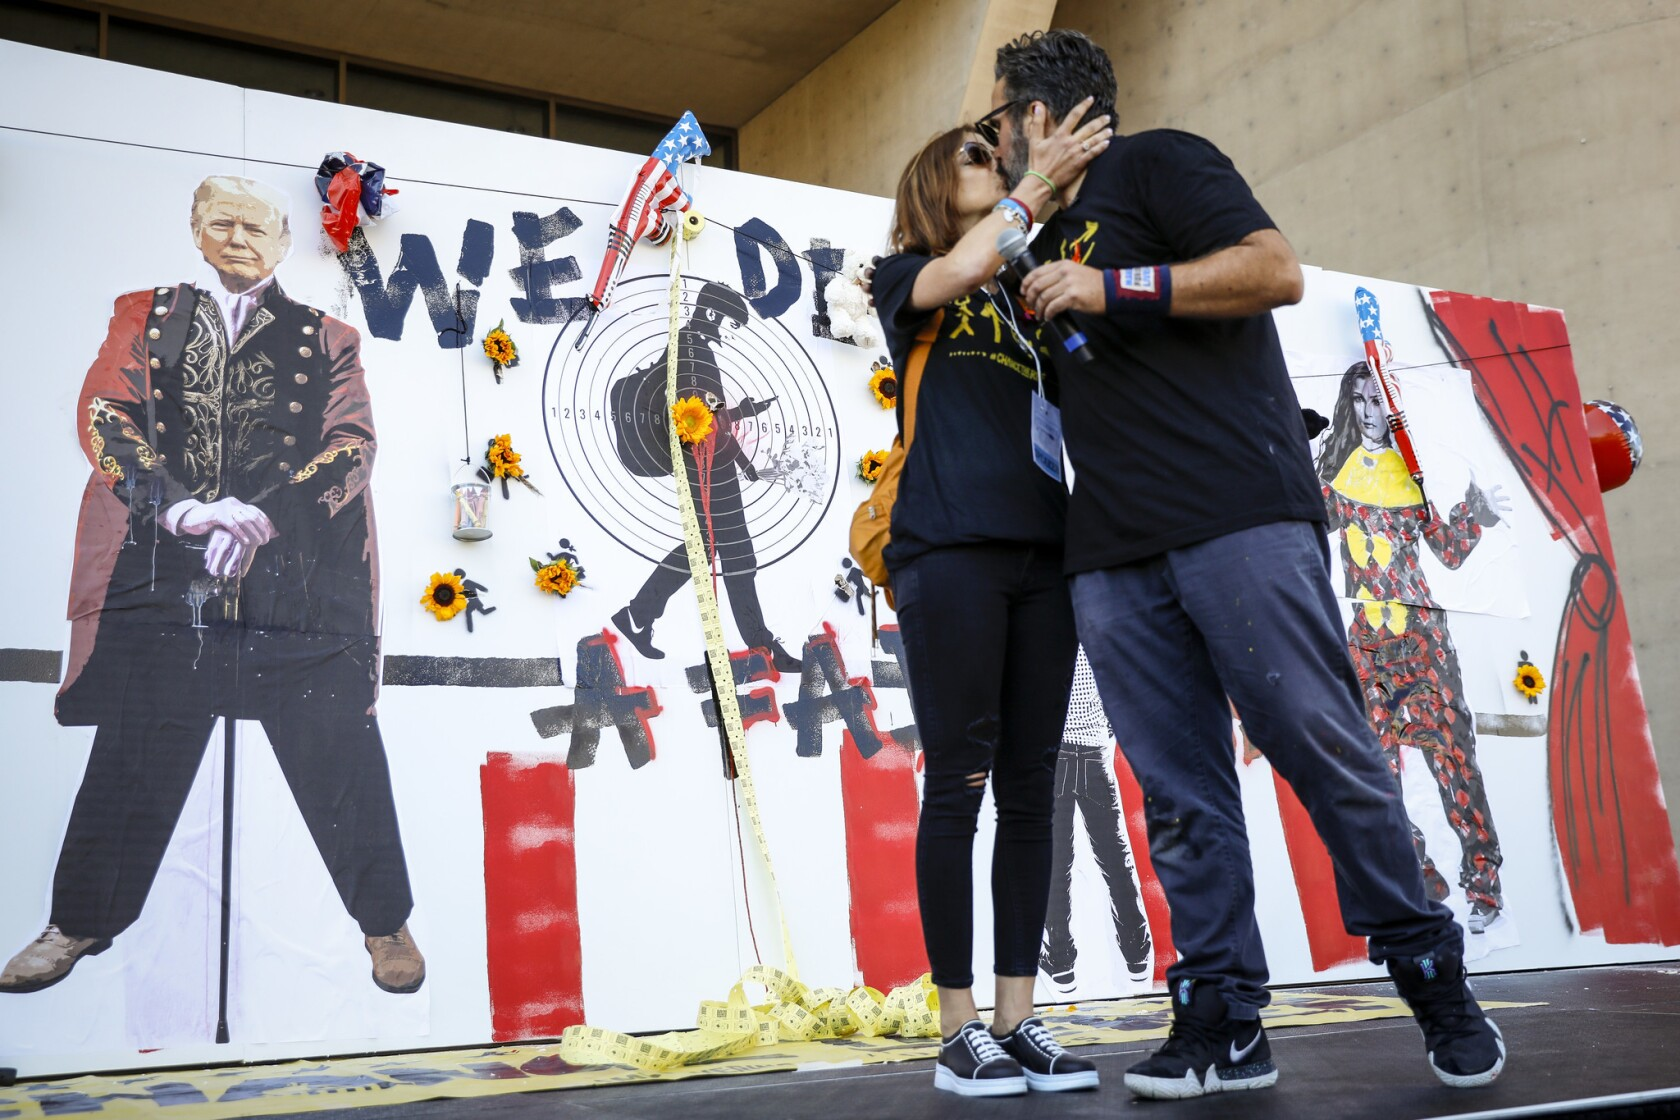 Grieving parents of teen killed in Parkland school shooting use 'graphic activism' to confront the NRA